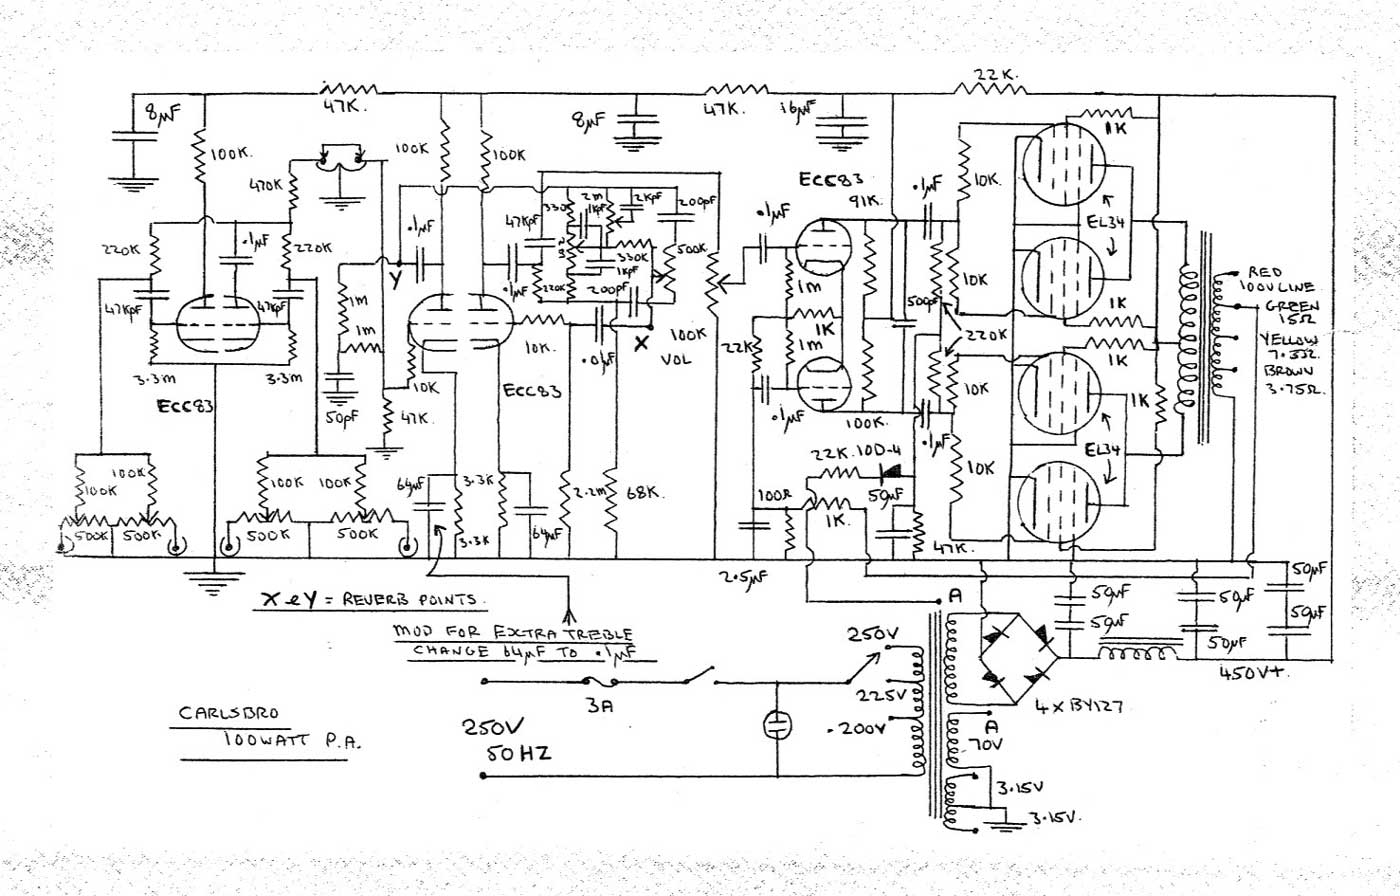 Rolls Royce Wiring Diagrams. Diagram. Auto Wiring Diagram